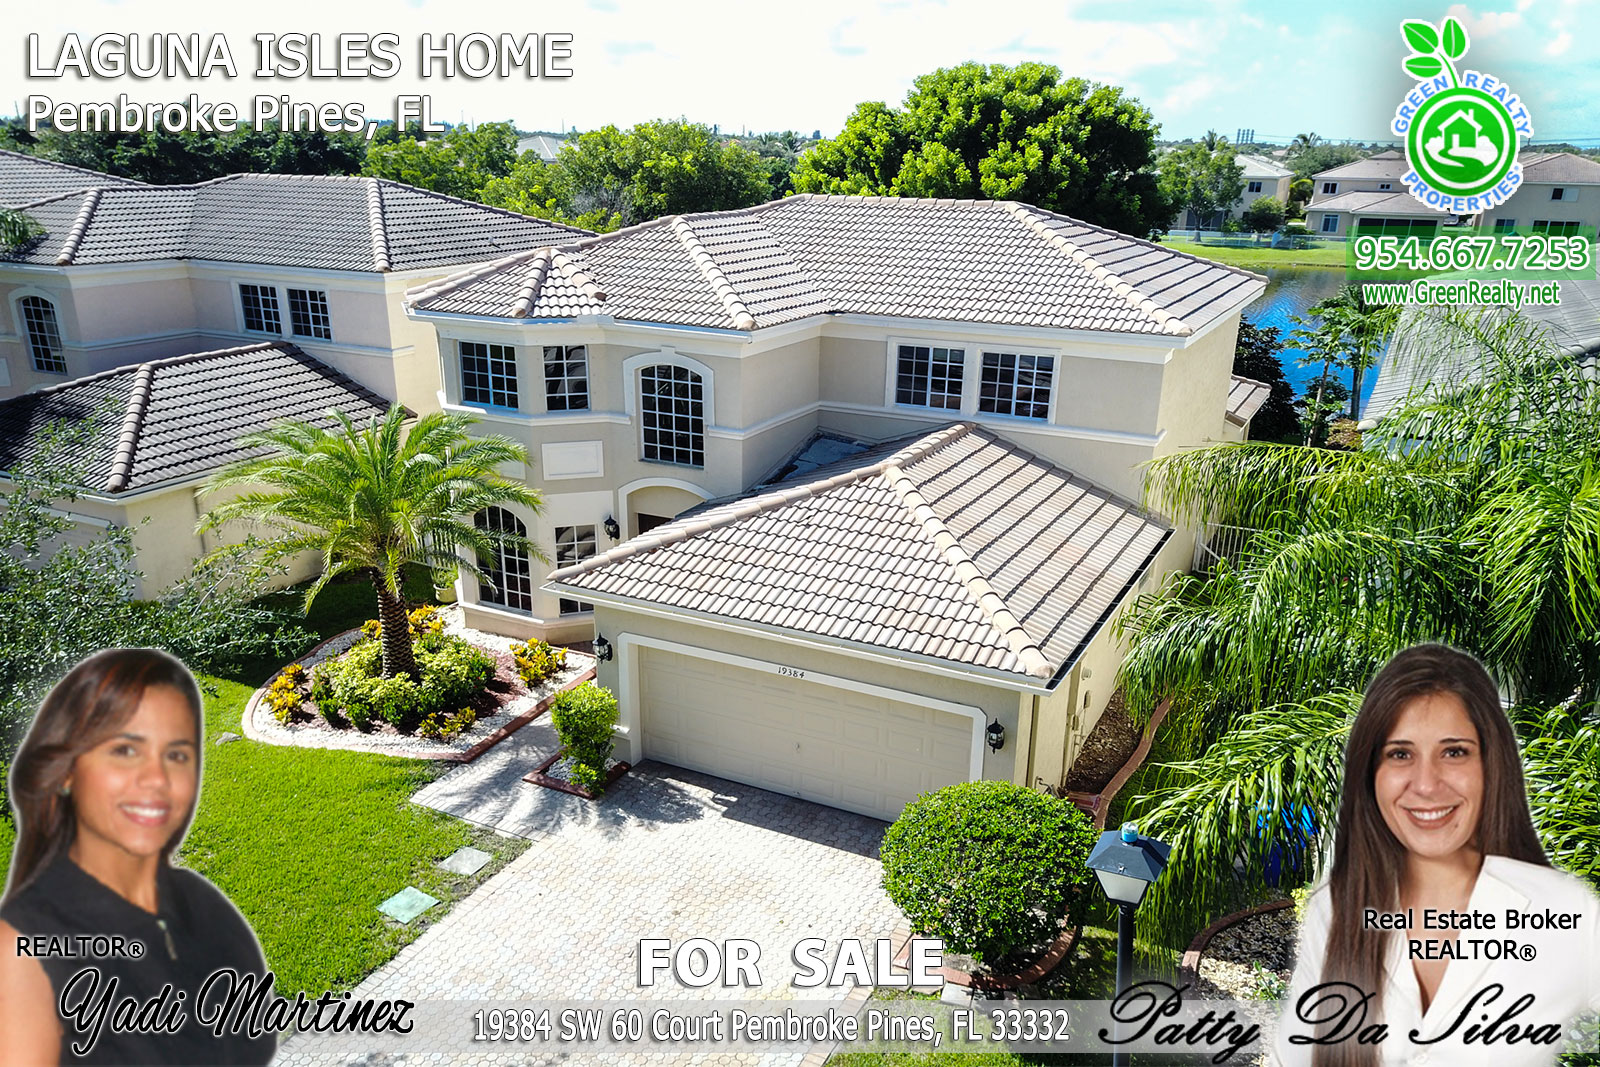 1-Pembroke-pines-laguna-isles-home-for-sale-by-green-realty-properties-12